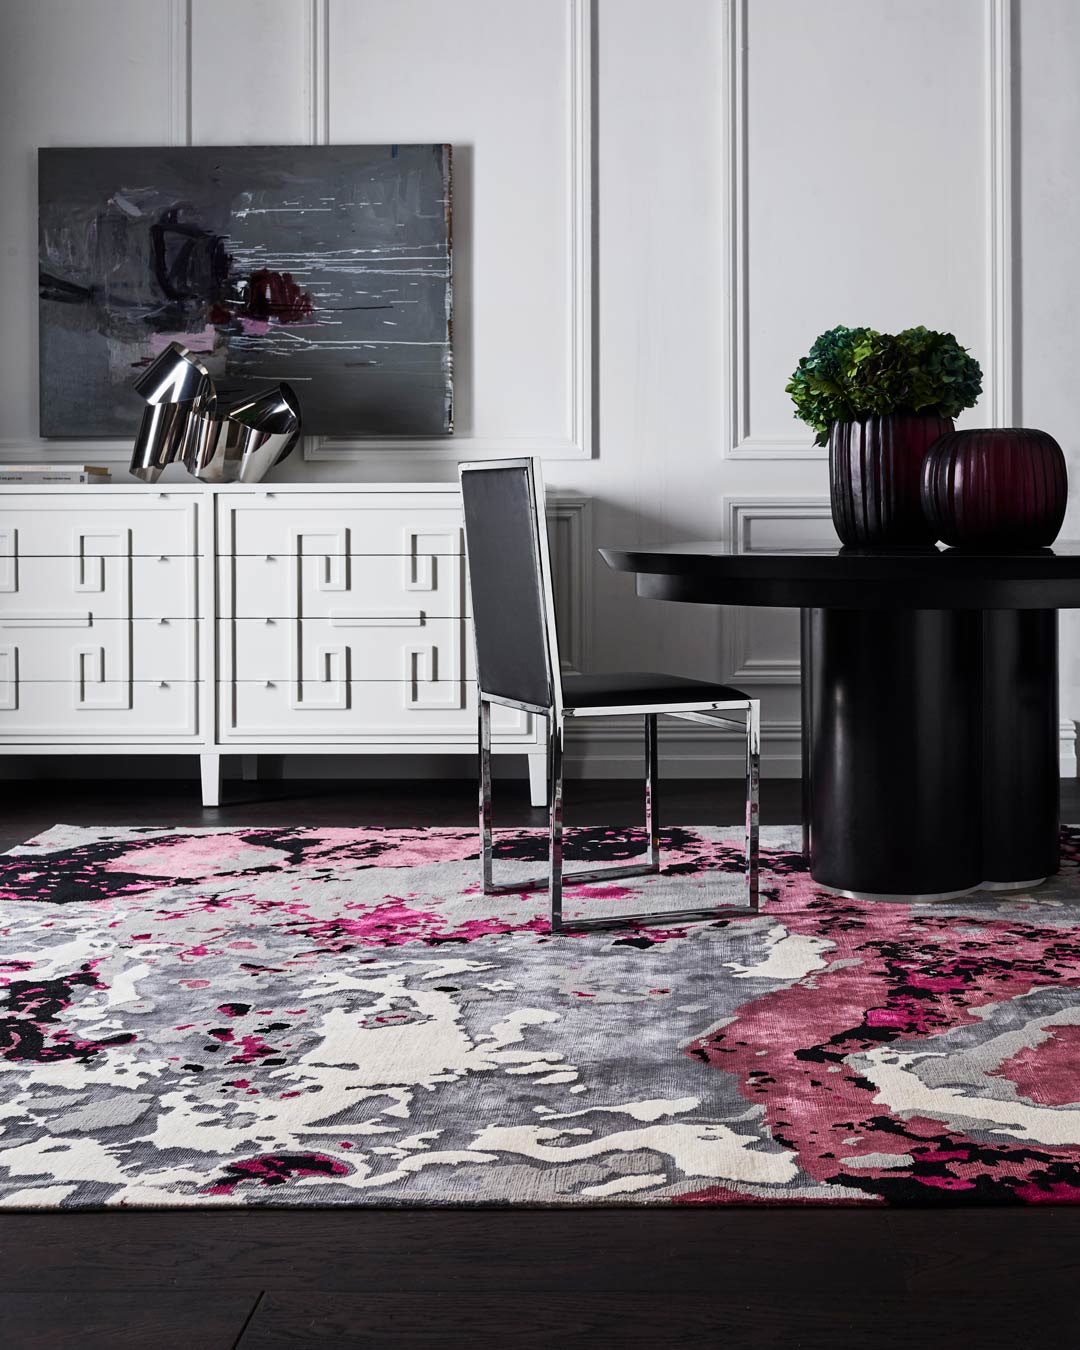 location shot of onyx rug by greg natale